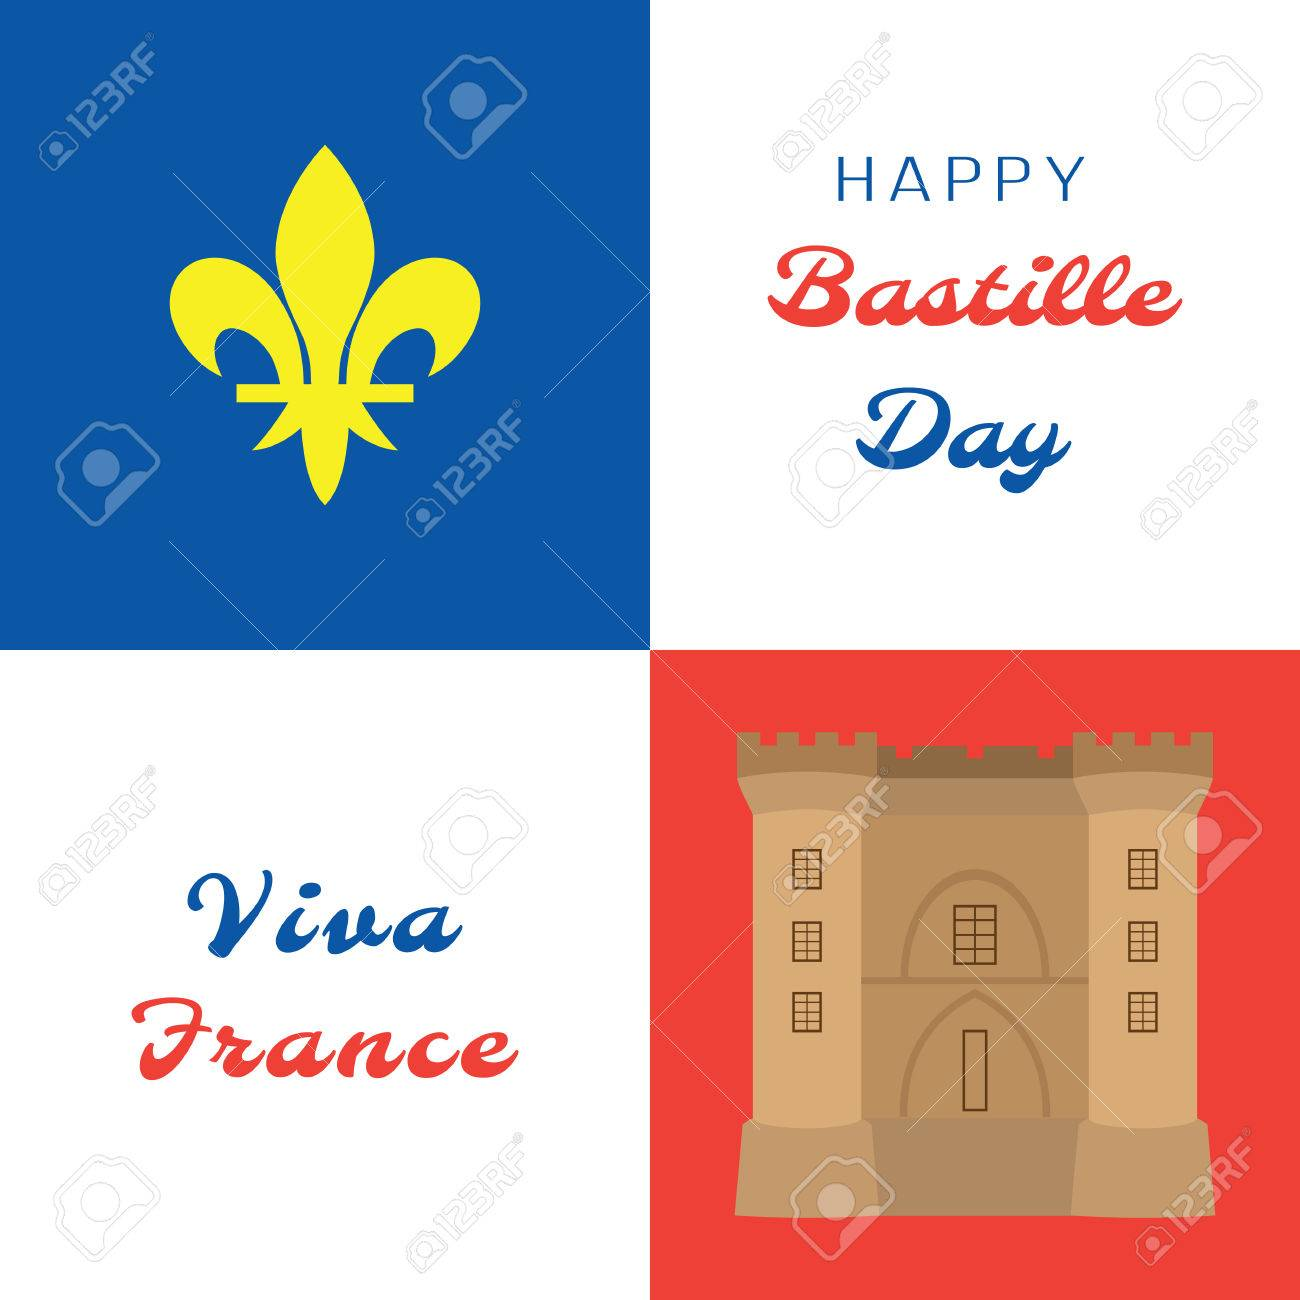 Bastille day symbols of france the lily and the bastille symbols of france the lily and the bastille fortress vector illustration biocorpaavc